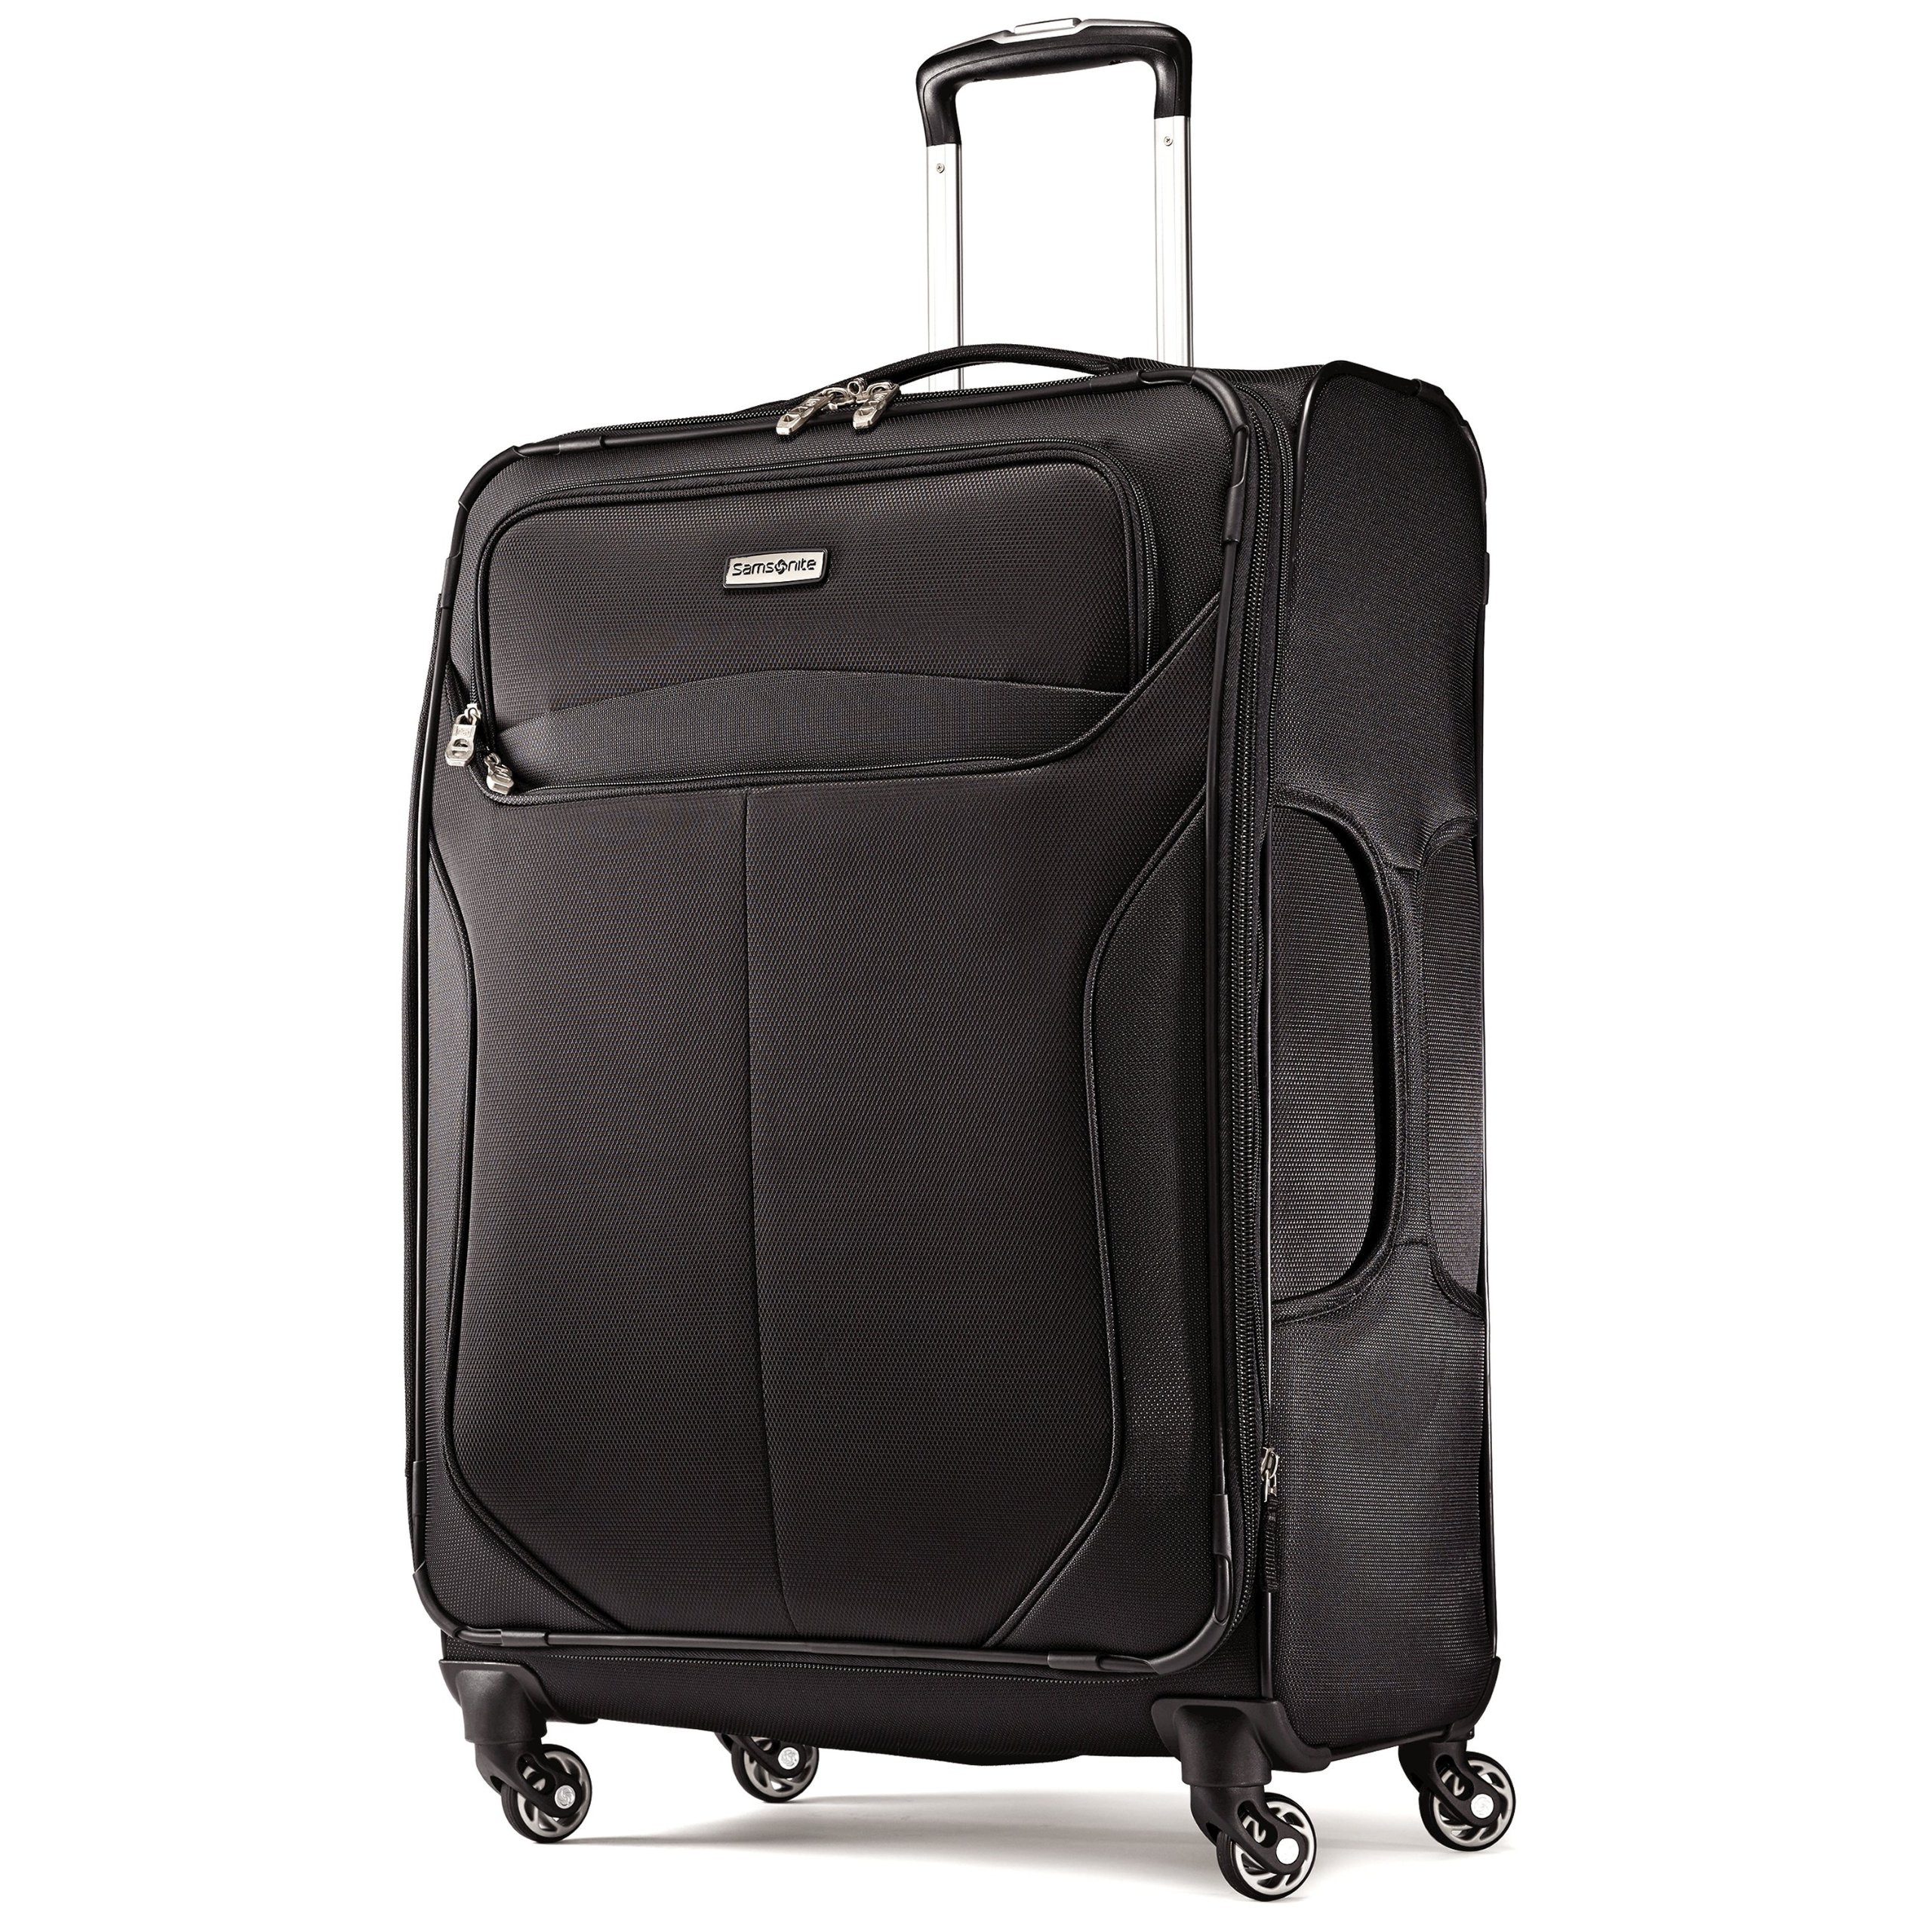 Samsonite Luggage Lift Spinner 29 Suitcases, Black, One Size